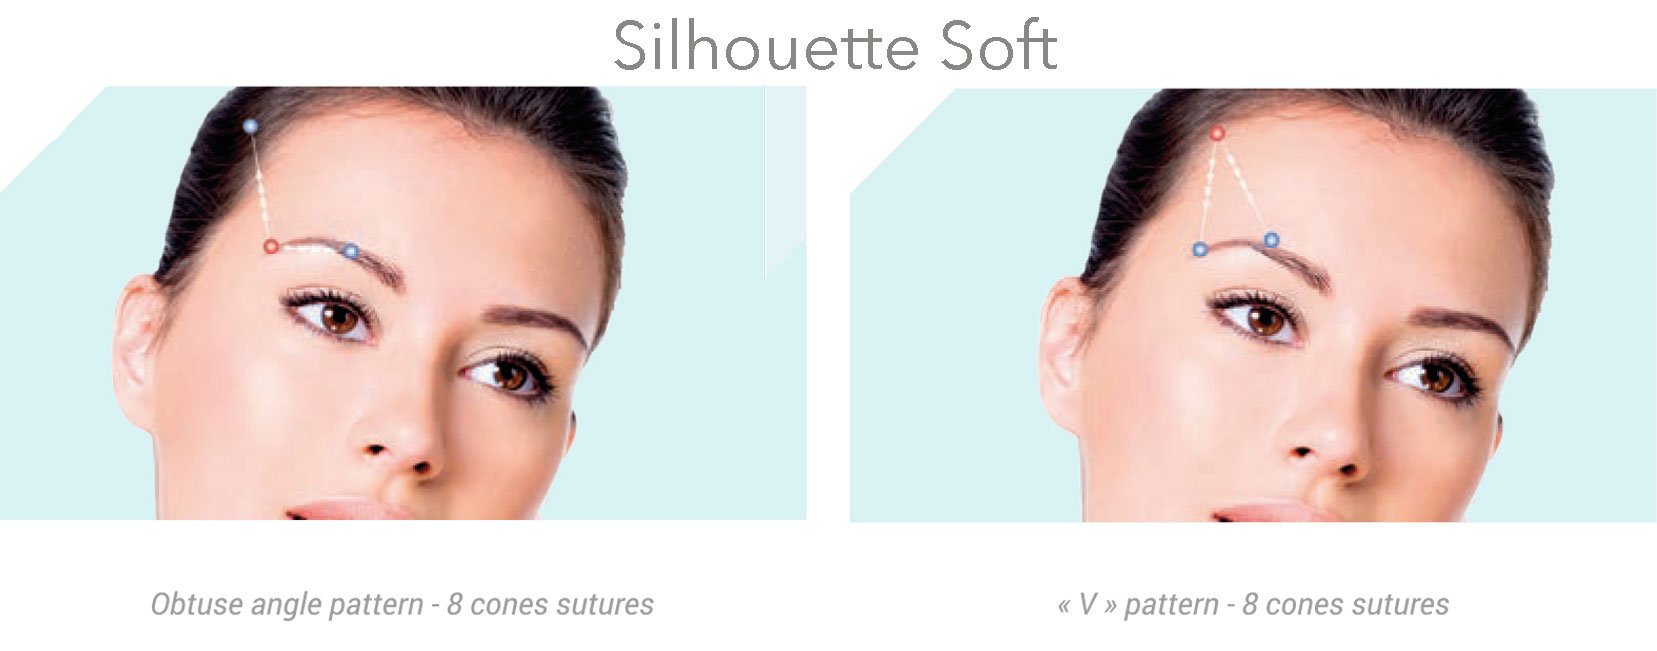 Before and After Silhouette Soft & PDO Thread Face Lift